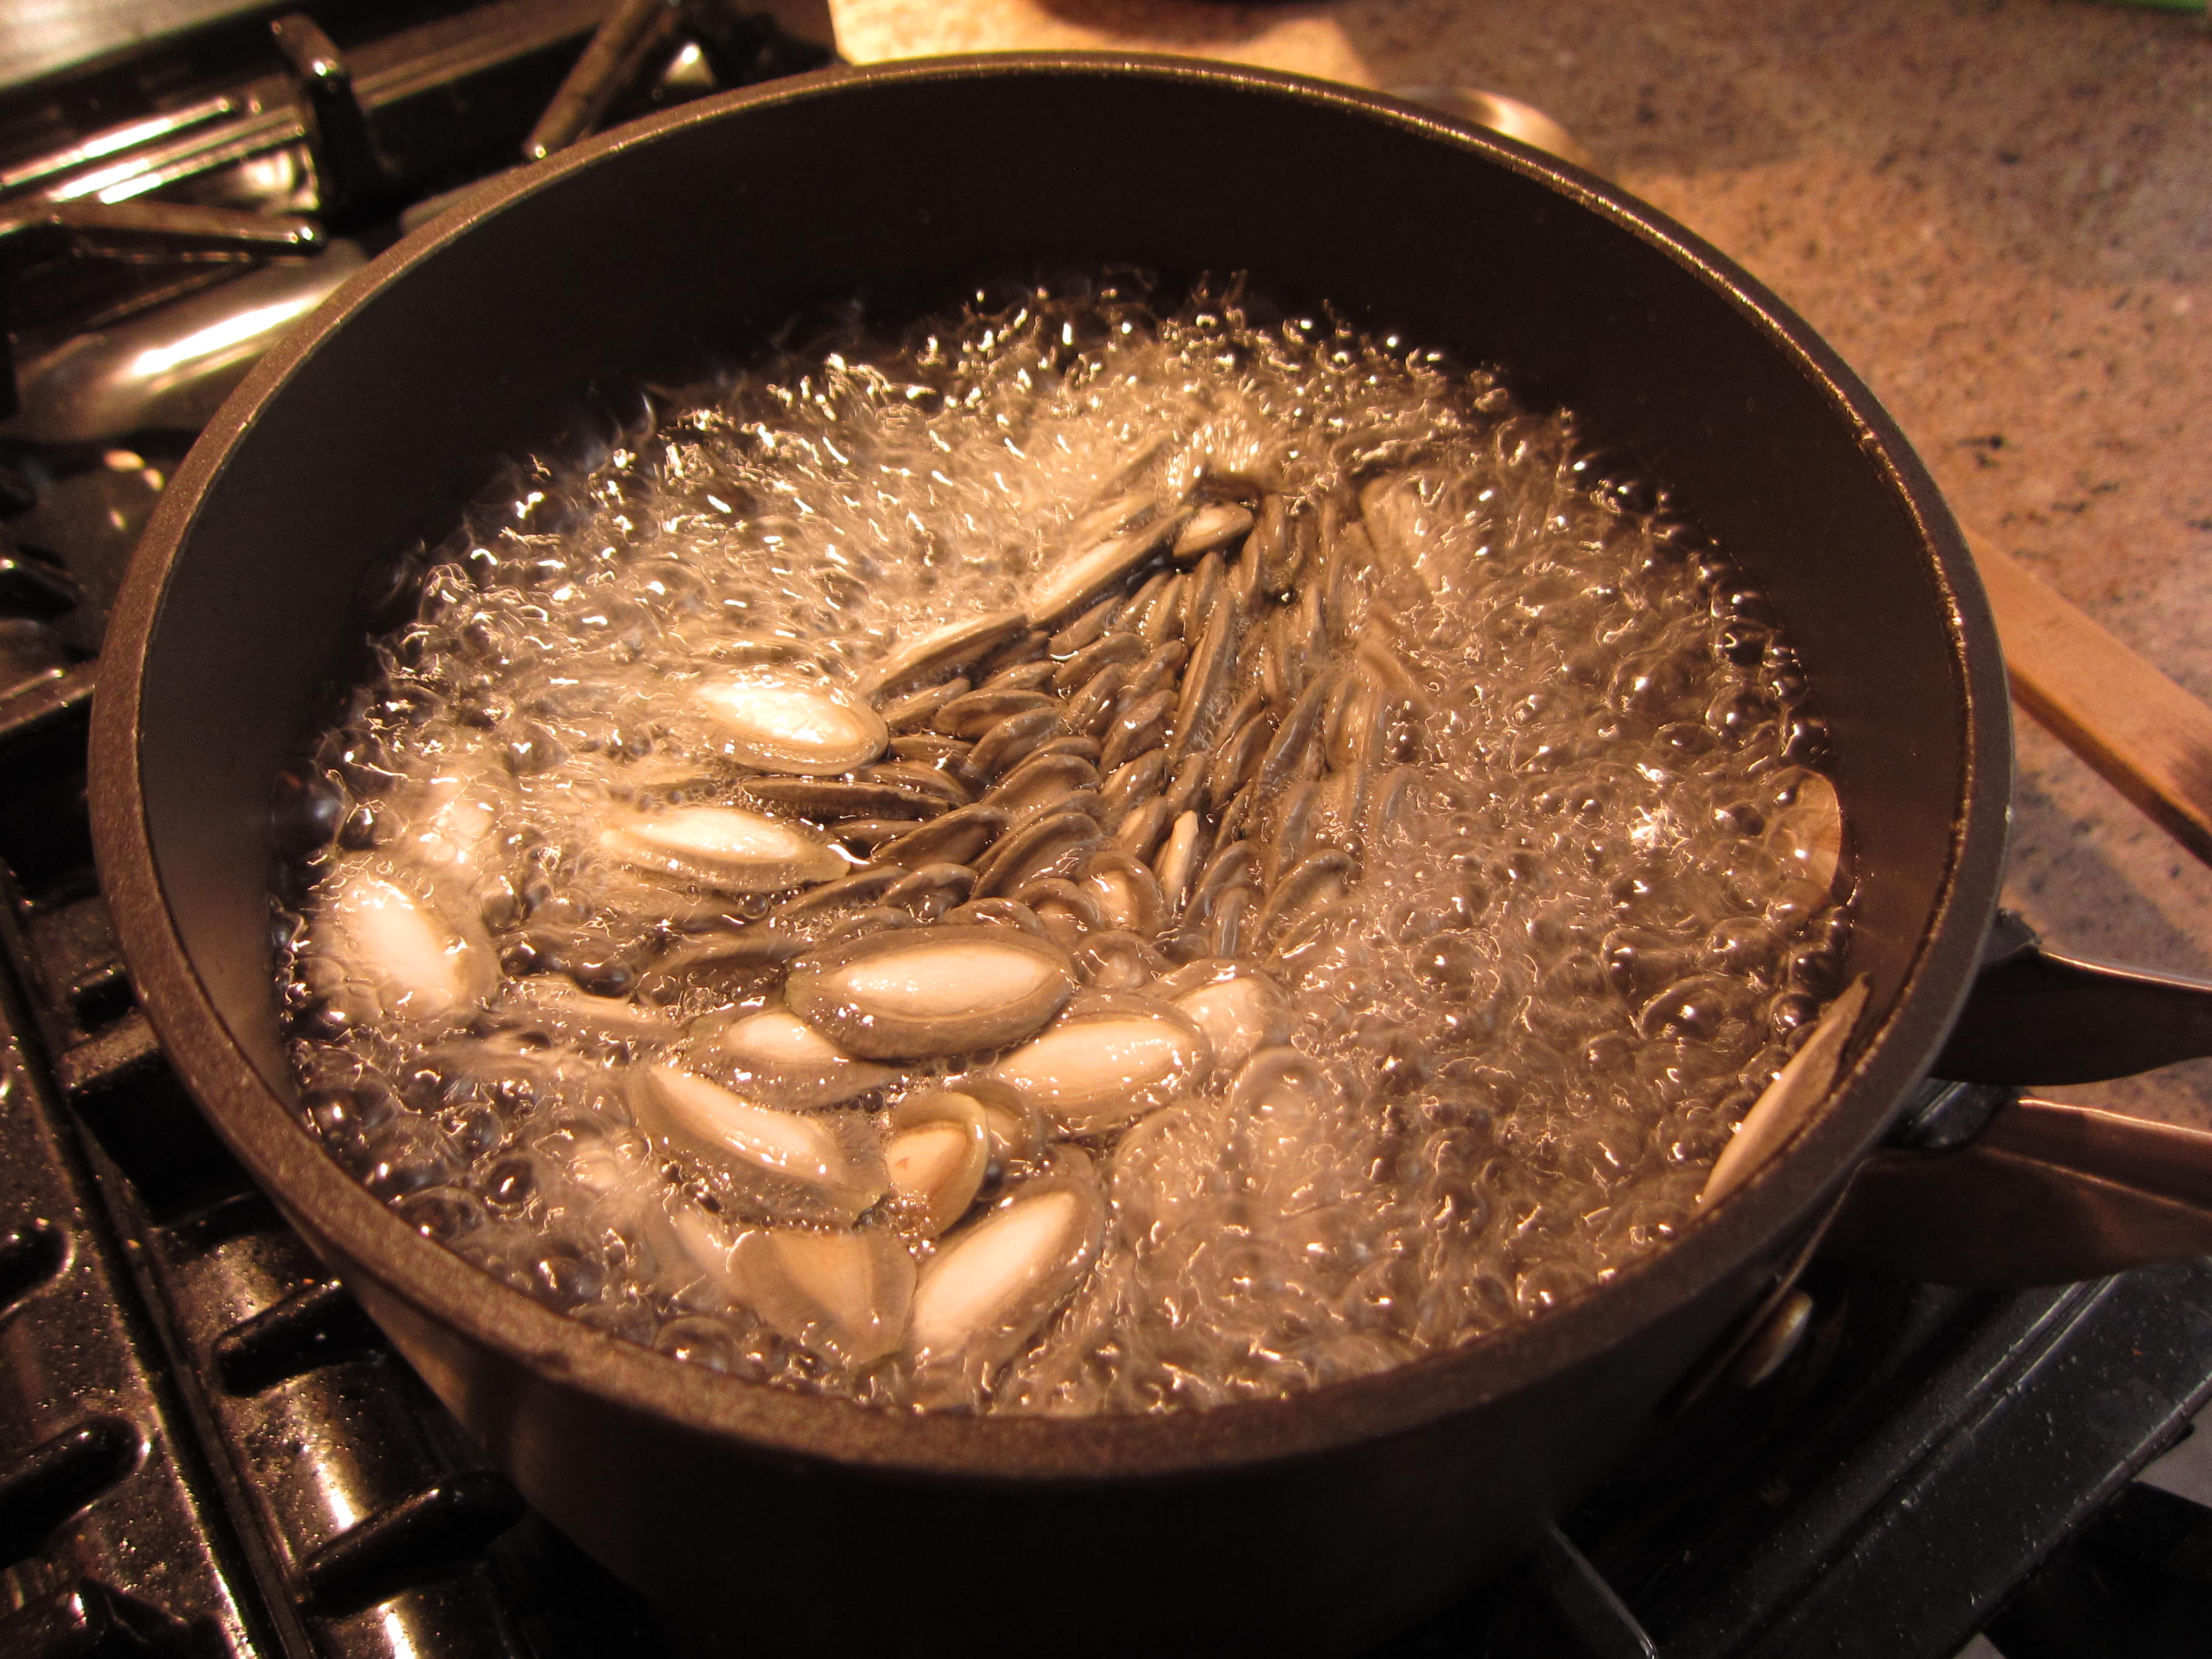 Next, bring them to a boil in salted water (1 tsp) and simmer for 10 minutes.